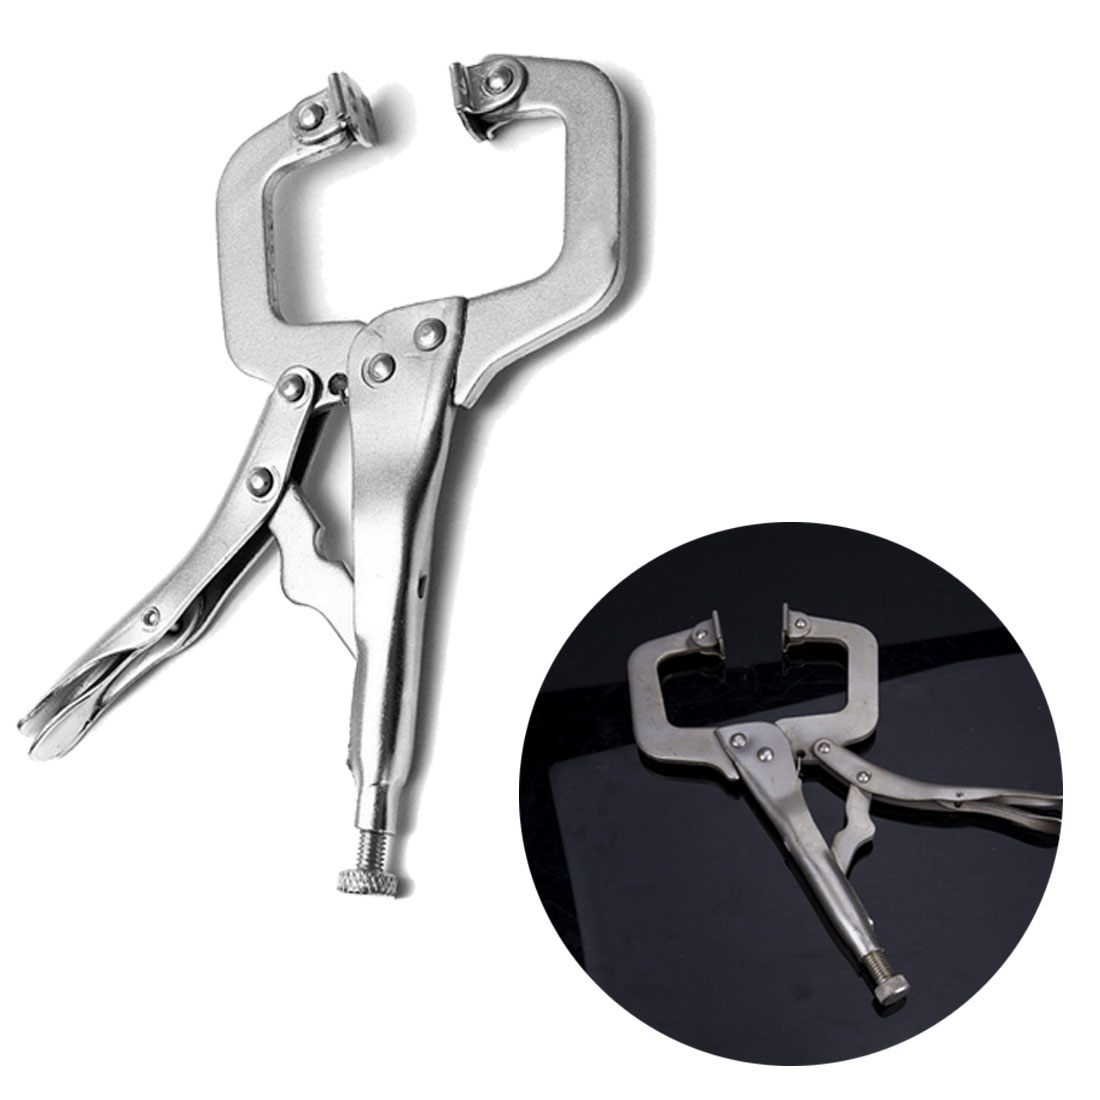 C Clamp Weld Clip Woodwork  Vise Lock Jaw Alloy Steel Hand Tool Swivel Fix Plier Pincer Tong Tenon Locator Pad Wood Work